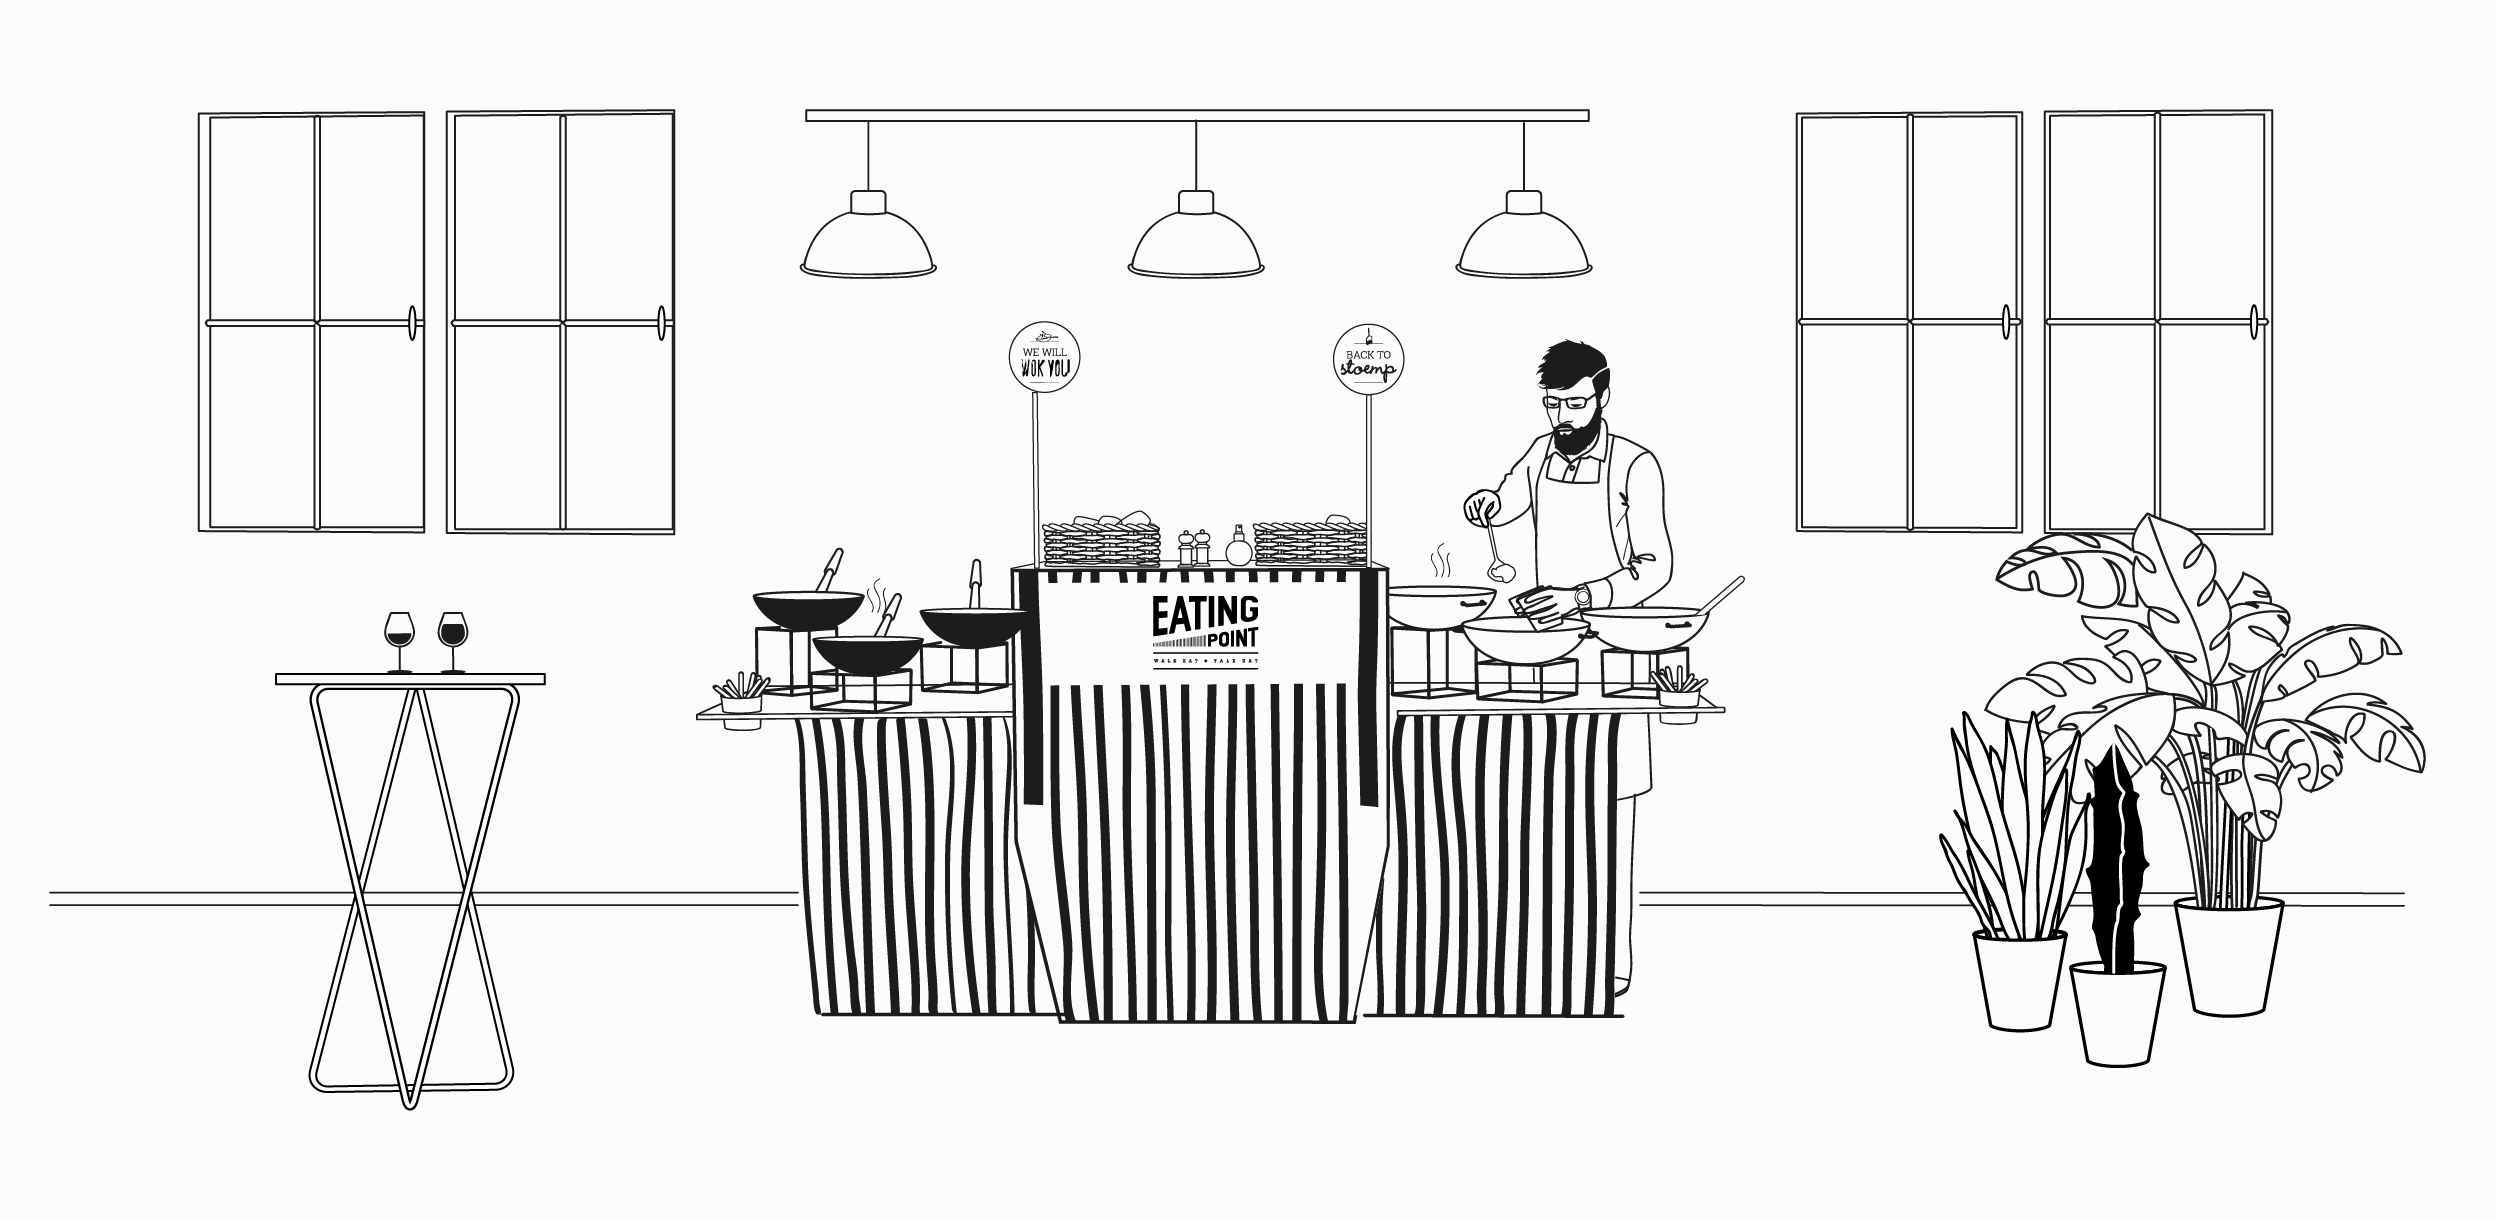 Vlevle_EatingPoint_Catering_Illustration-counter.png